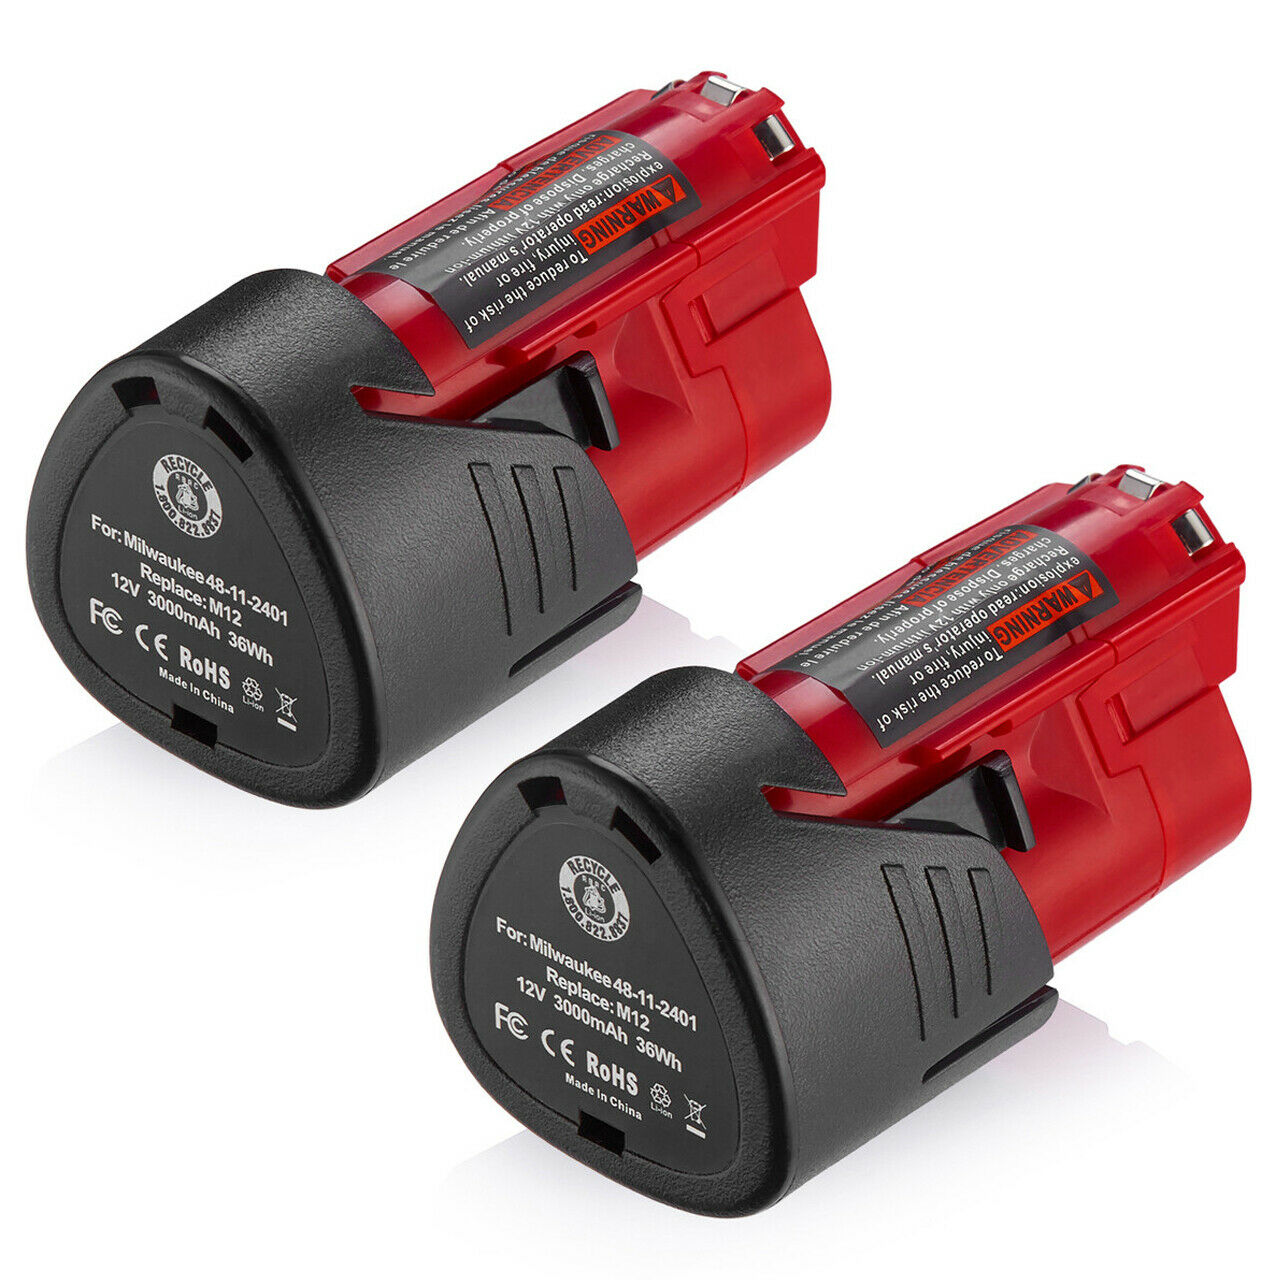 2 PACK 3000mAh For Milwaukee M12 12 Volt 48-11-2401 48-11-24